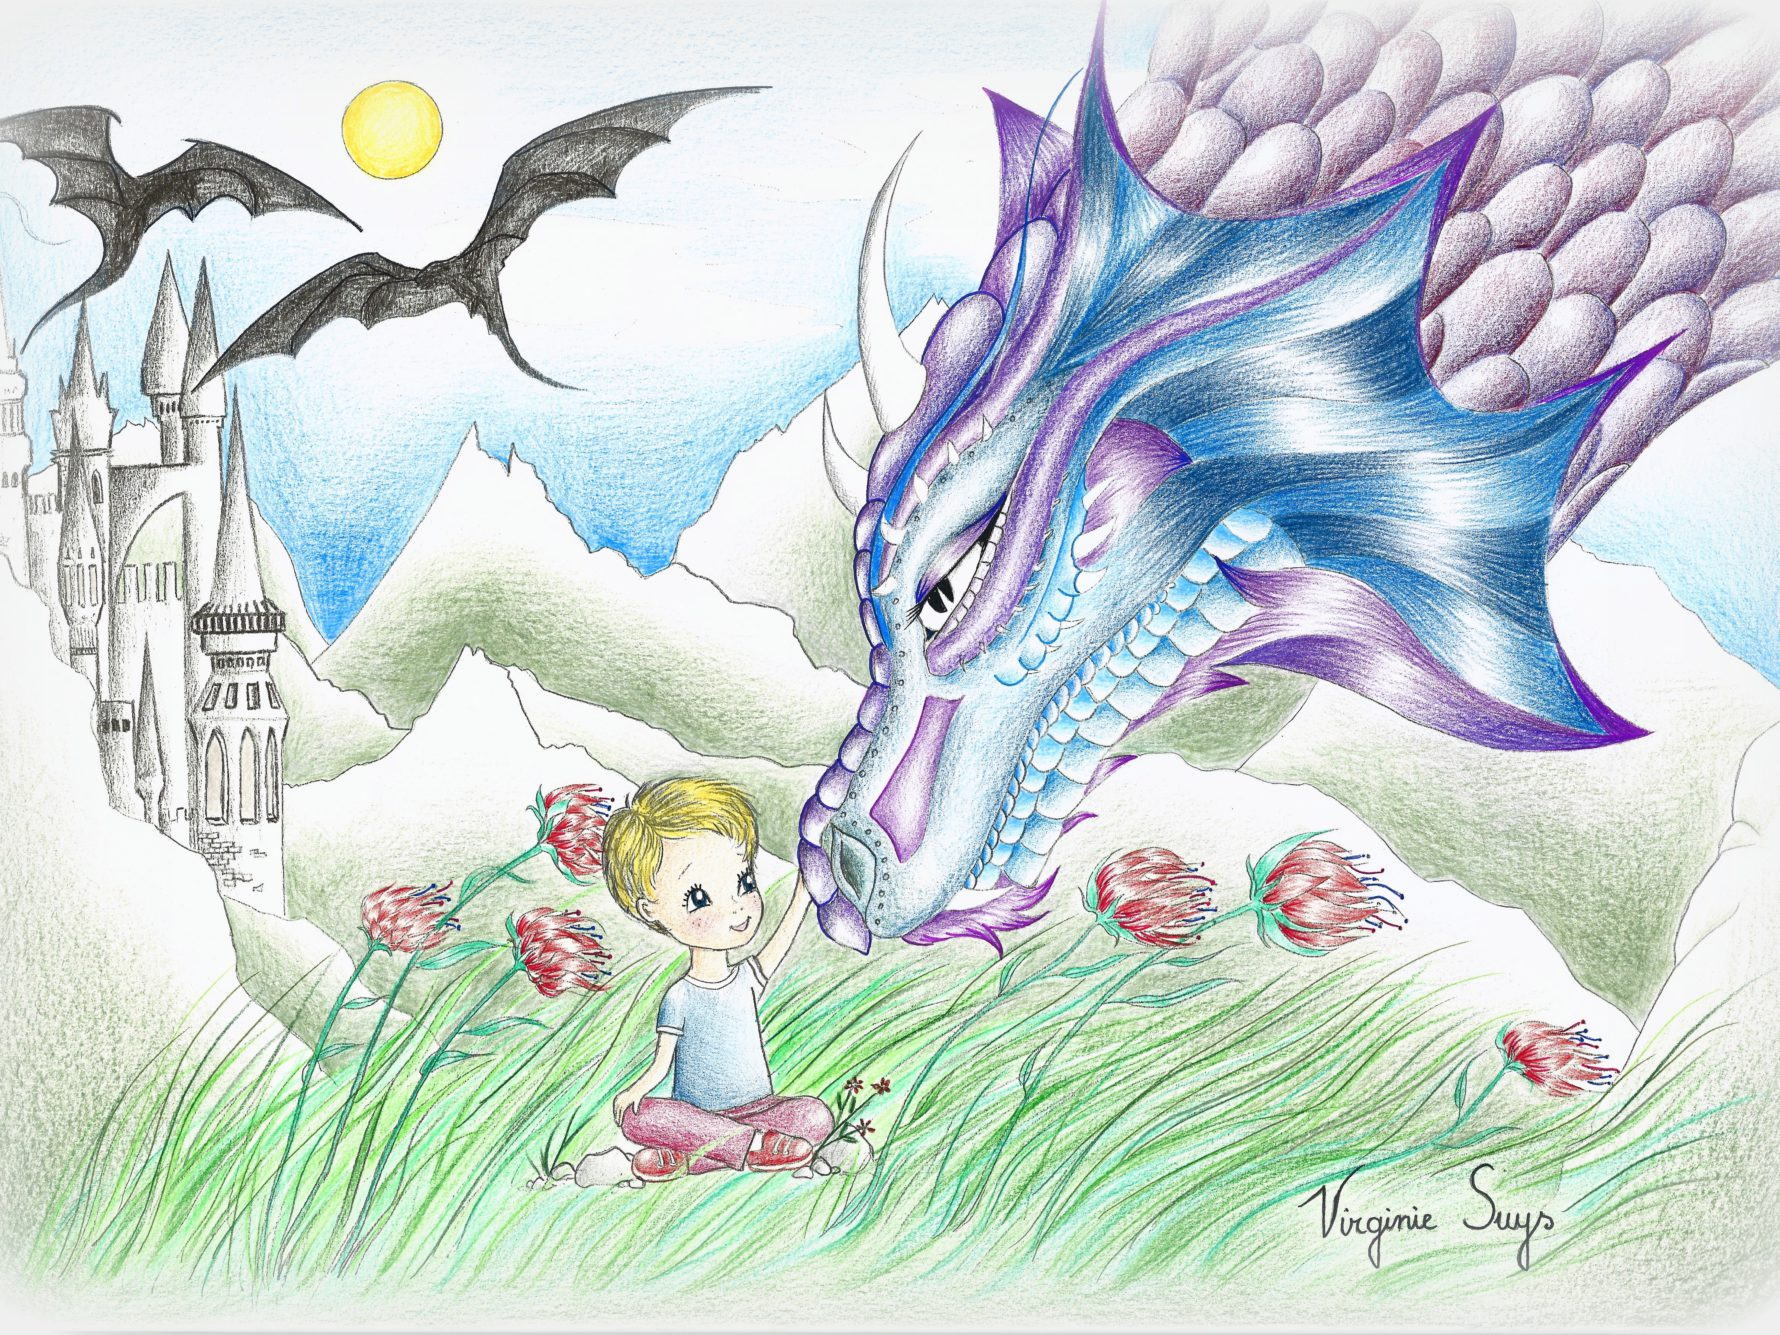 Virginie Suys Dragonboy in blue purple illustration